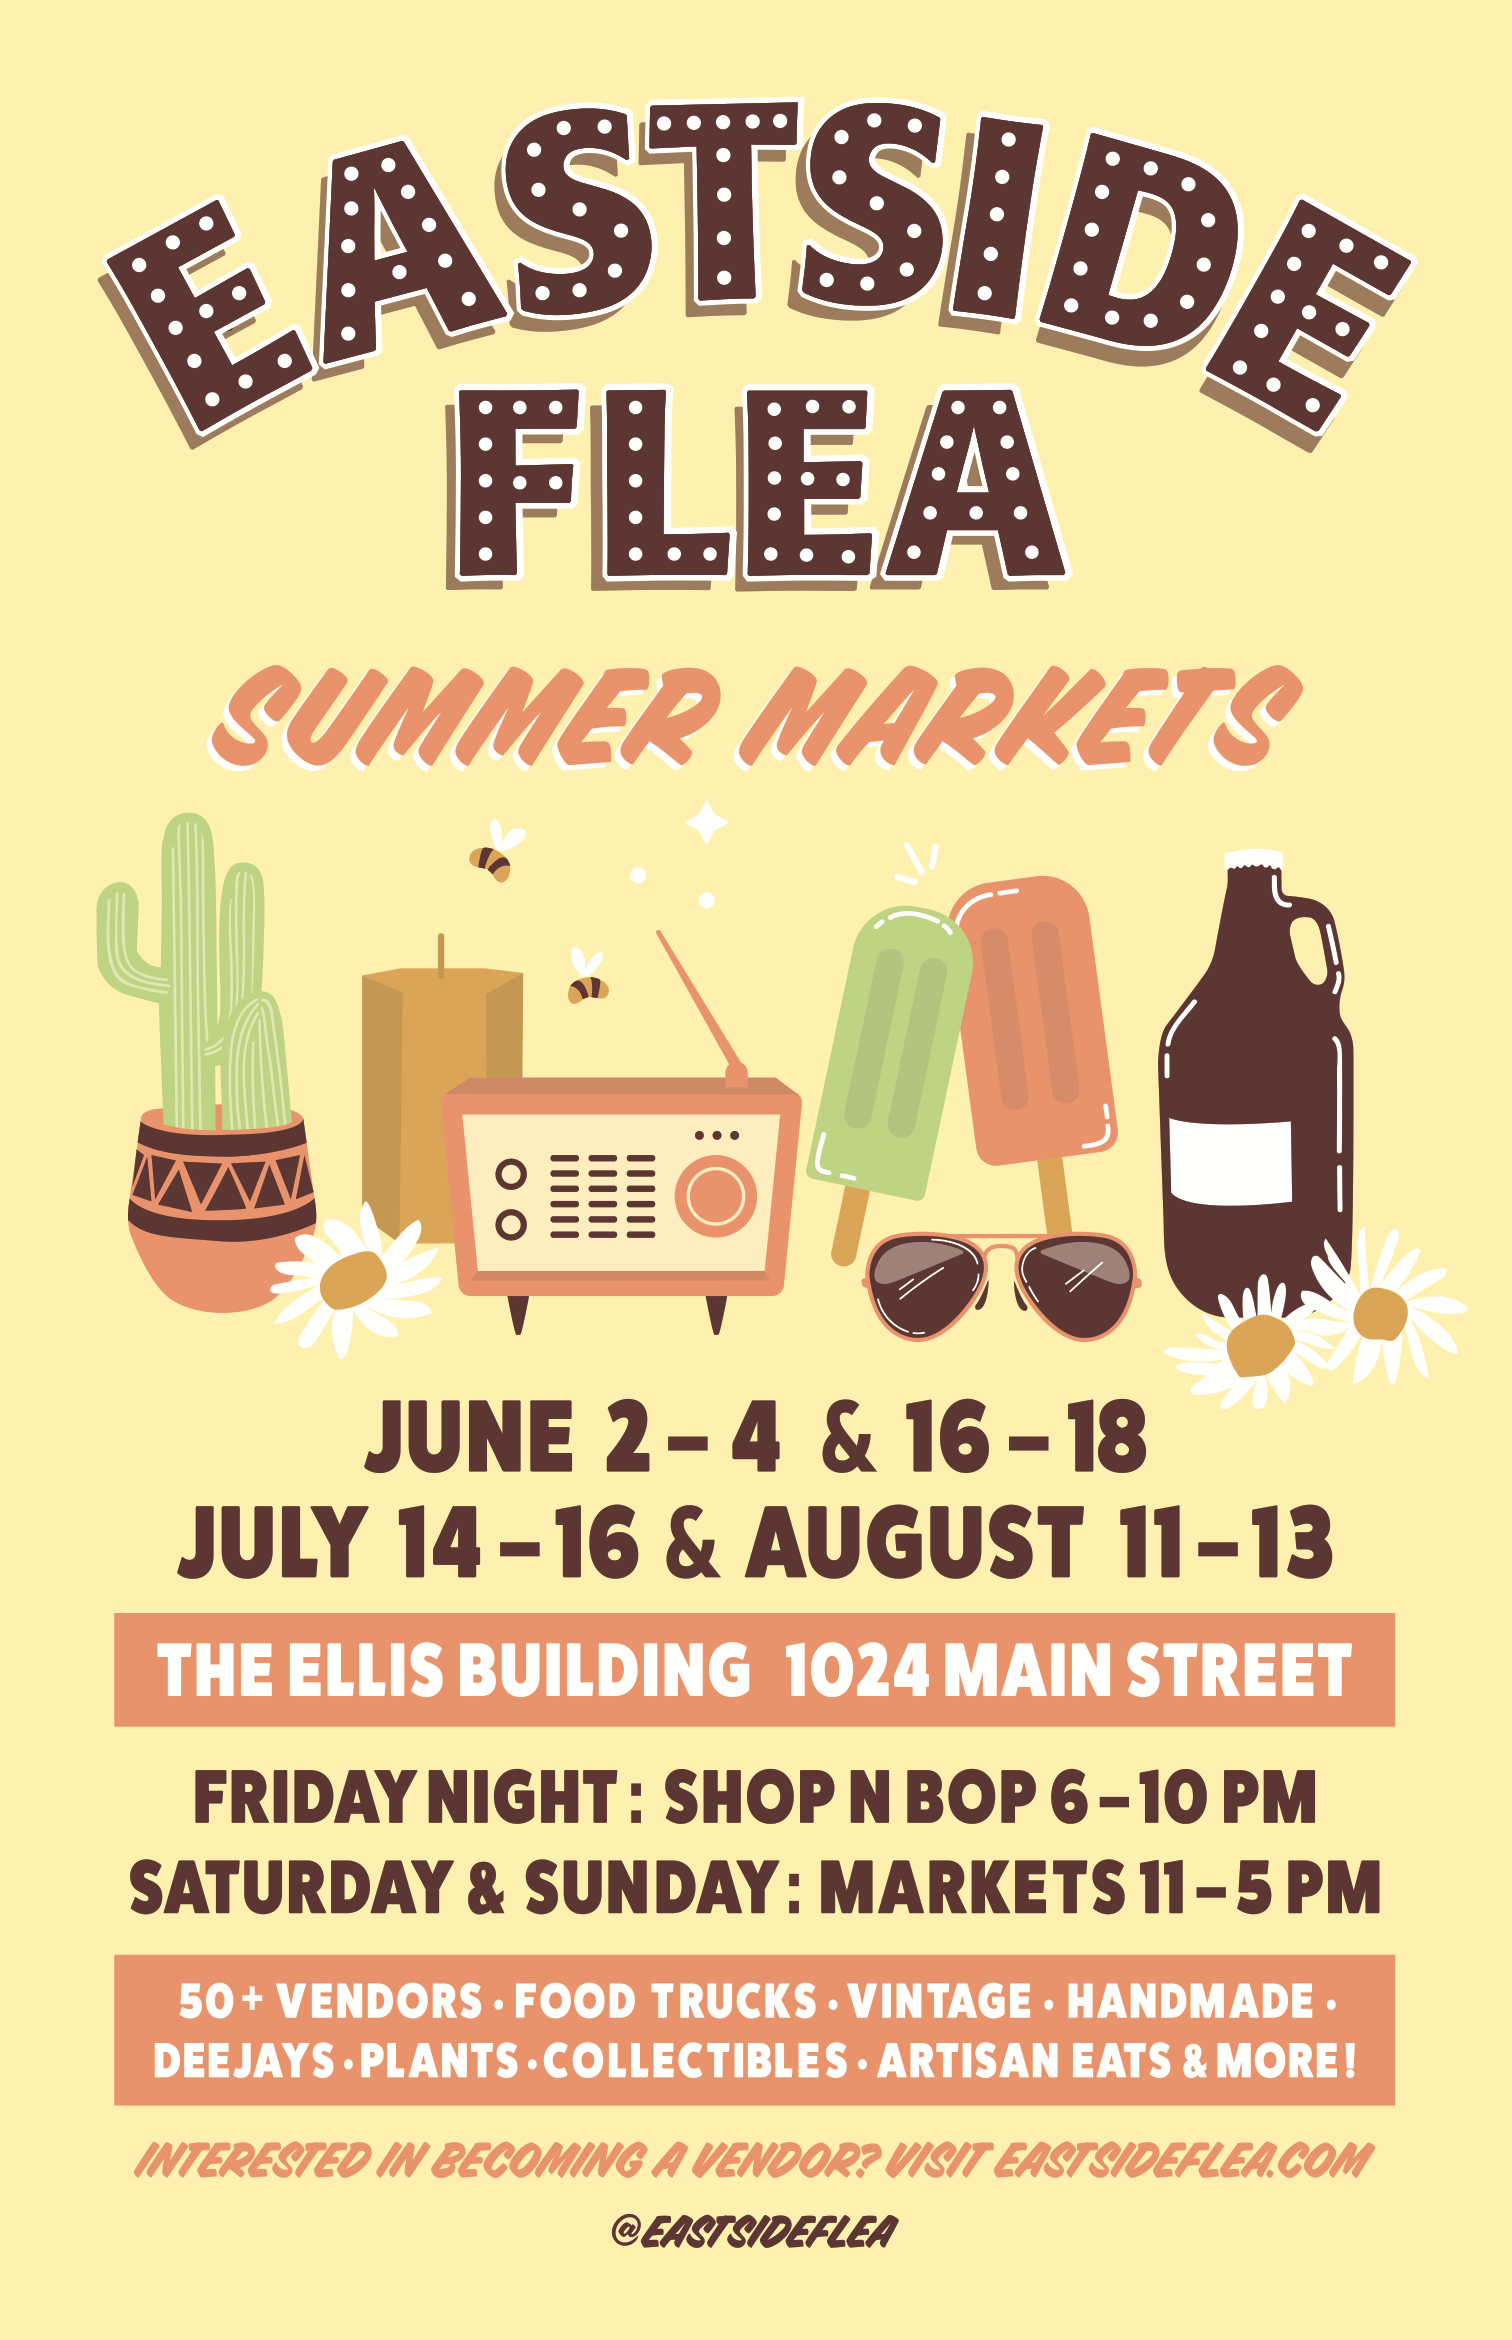 #Poster #Design for the Eastside Flea Summer Markets. #Vintage inspired with bright inviting colour and illustrative elements.